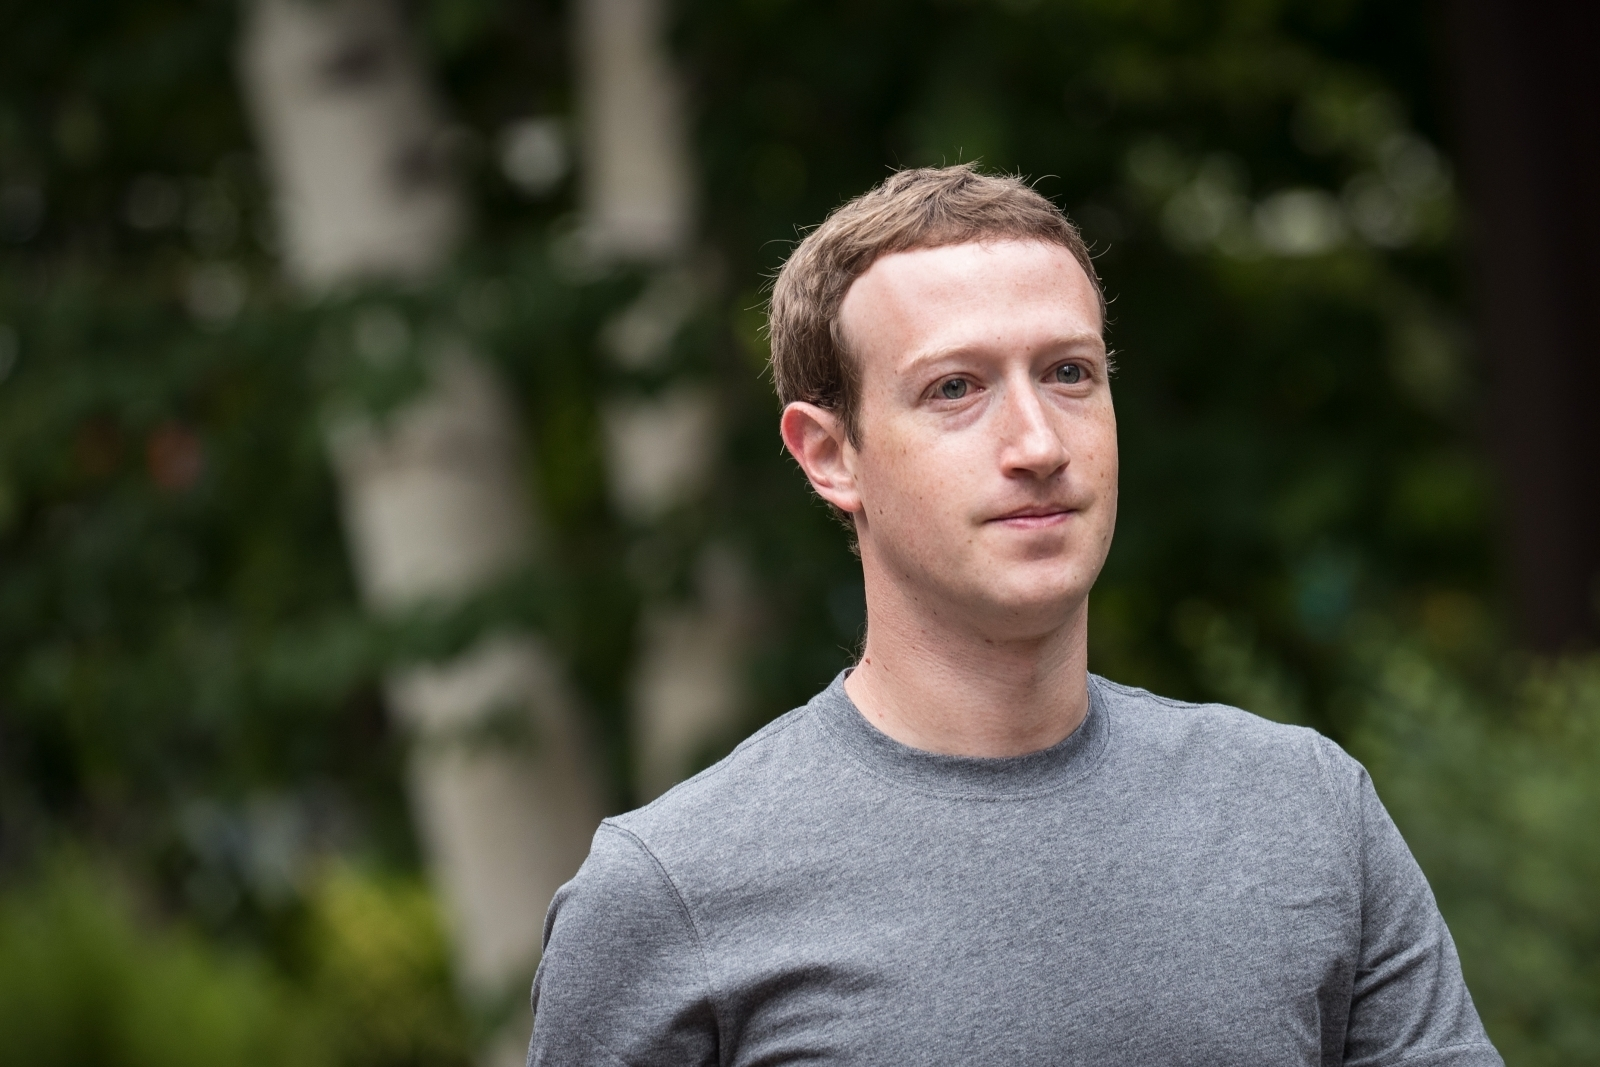 mark-zuckerberg-and-other-business-leaders-oppose-trumps-order-to-end-daca